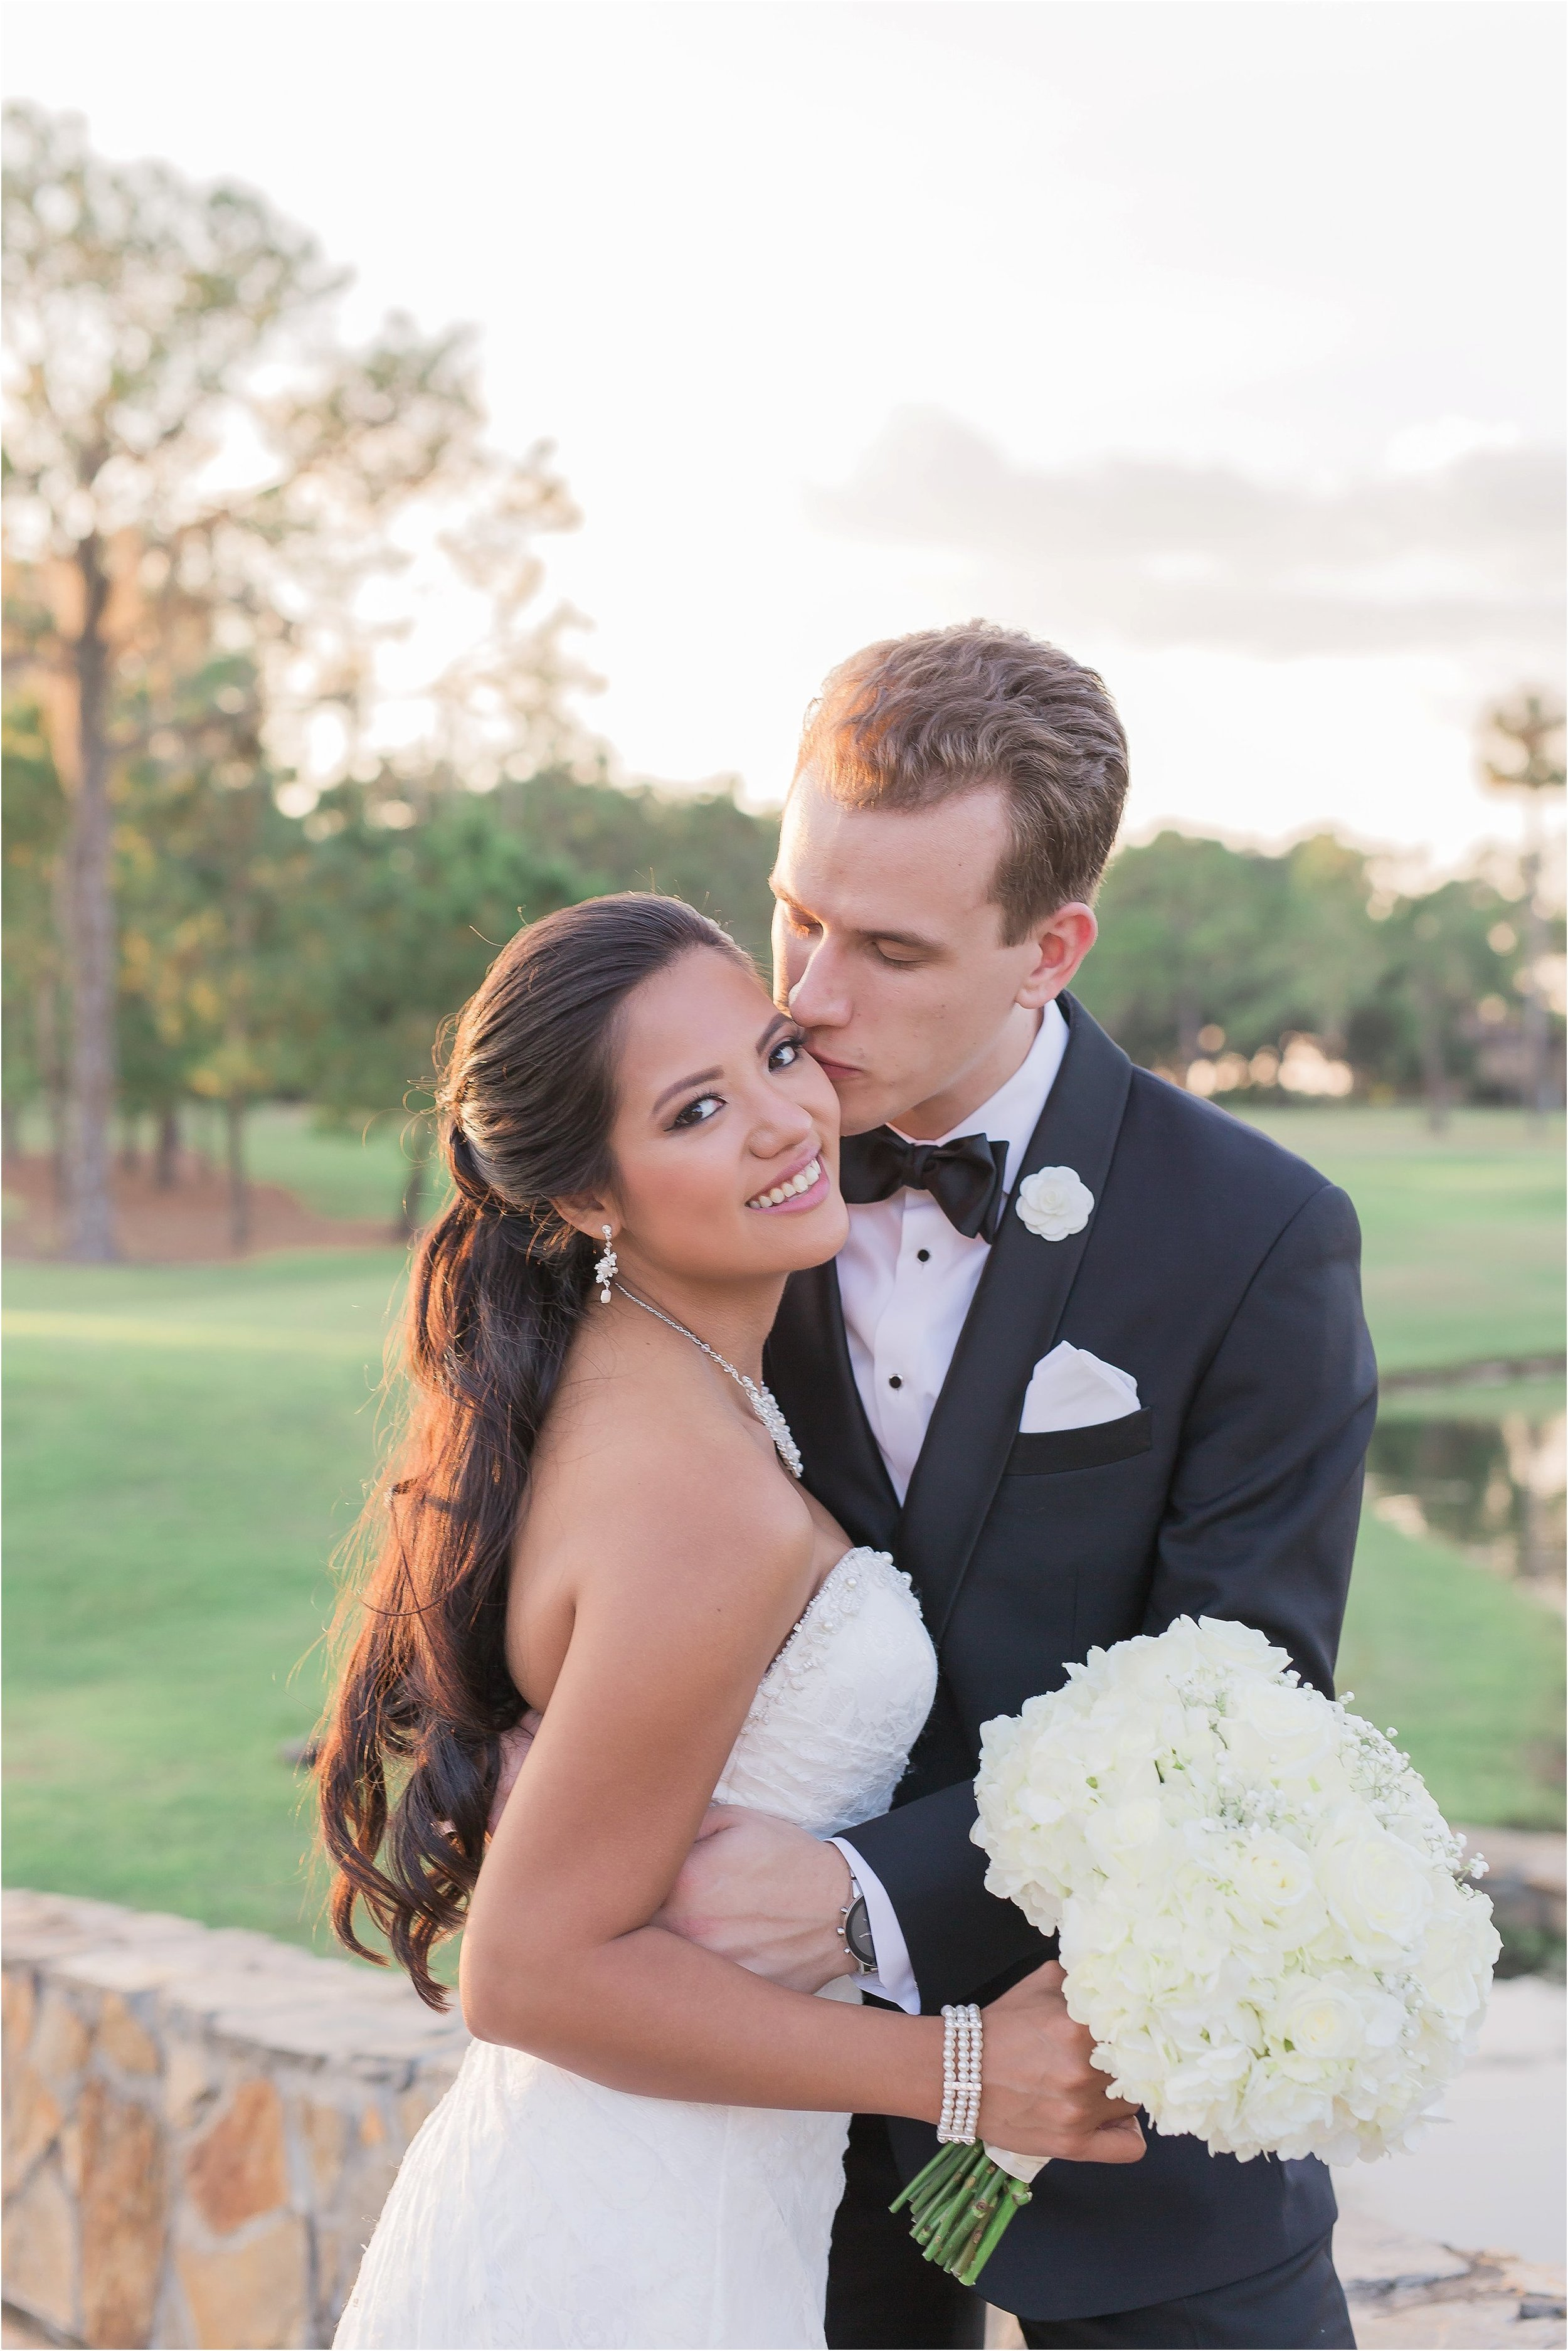 Bride and Groom Portraits.  Fun poses to show off the newlyweds!